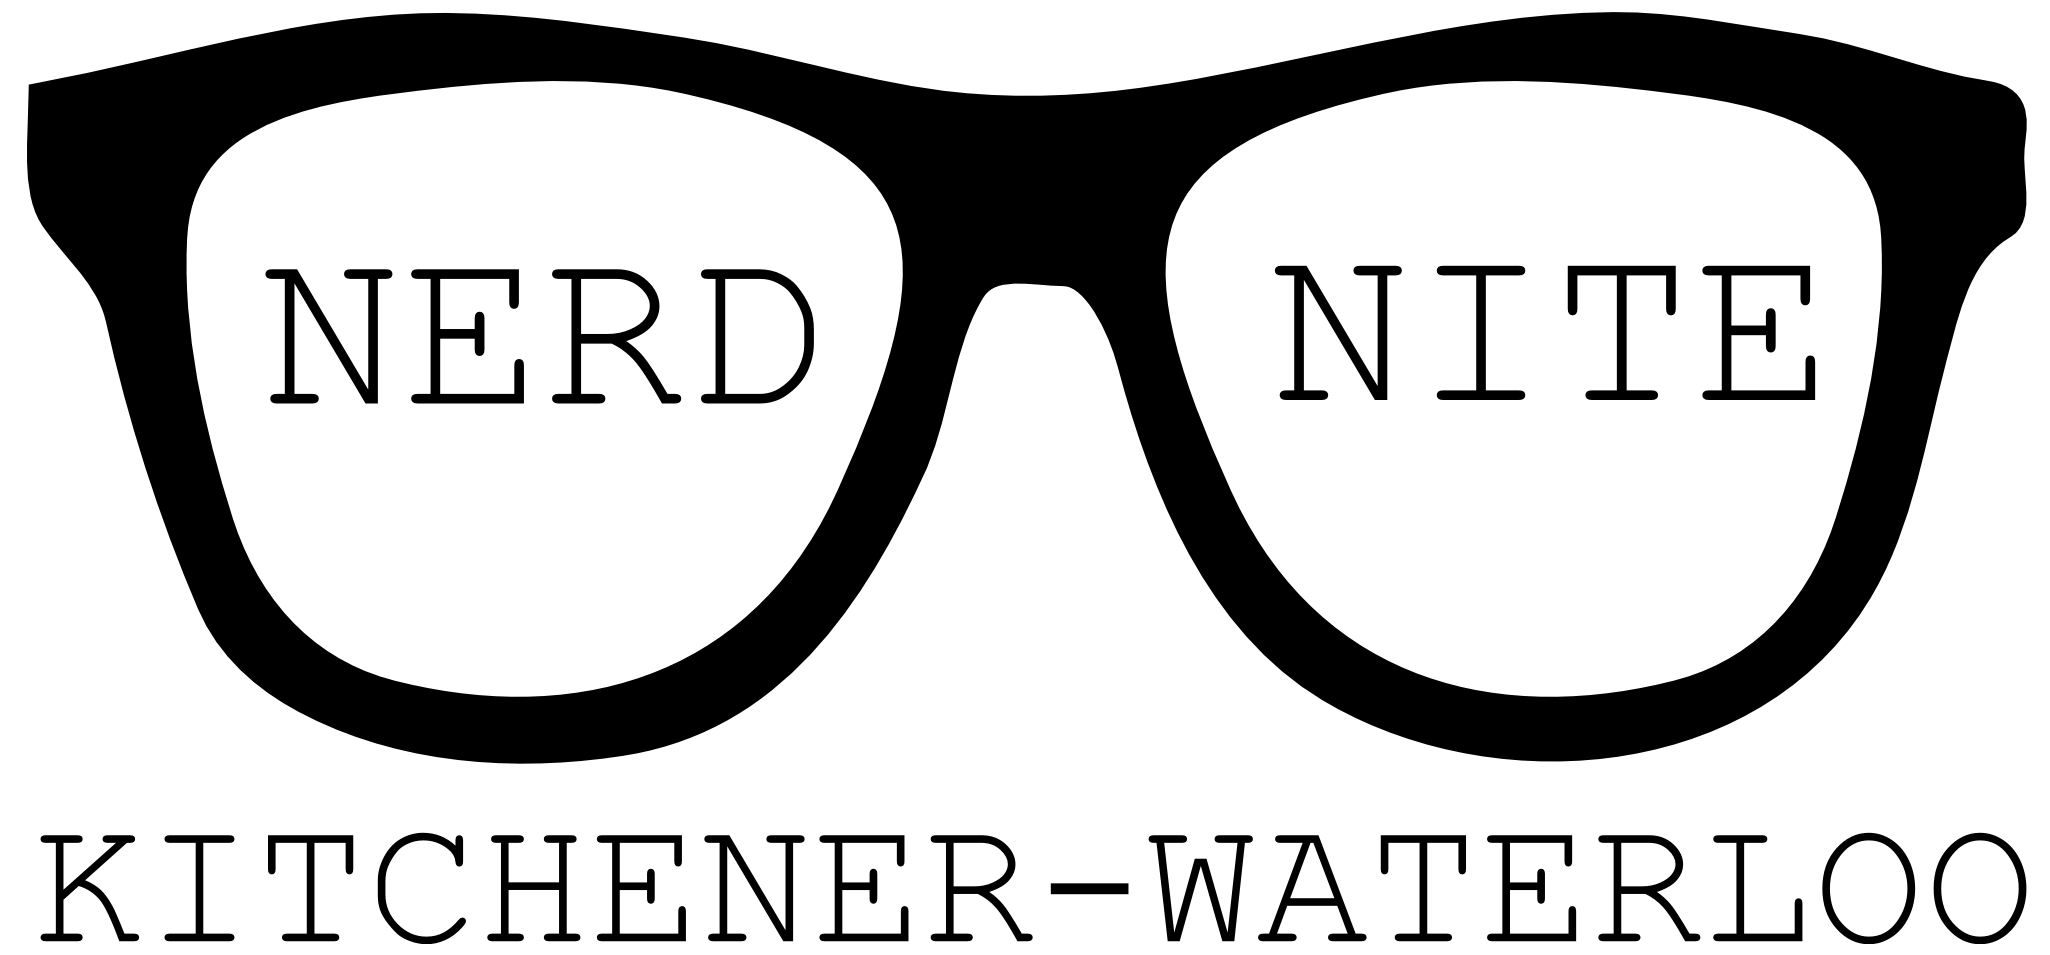 Nerd Nite Kitchener-Waterloo